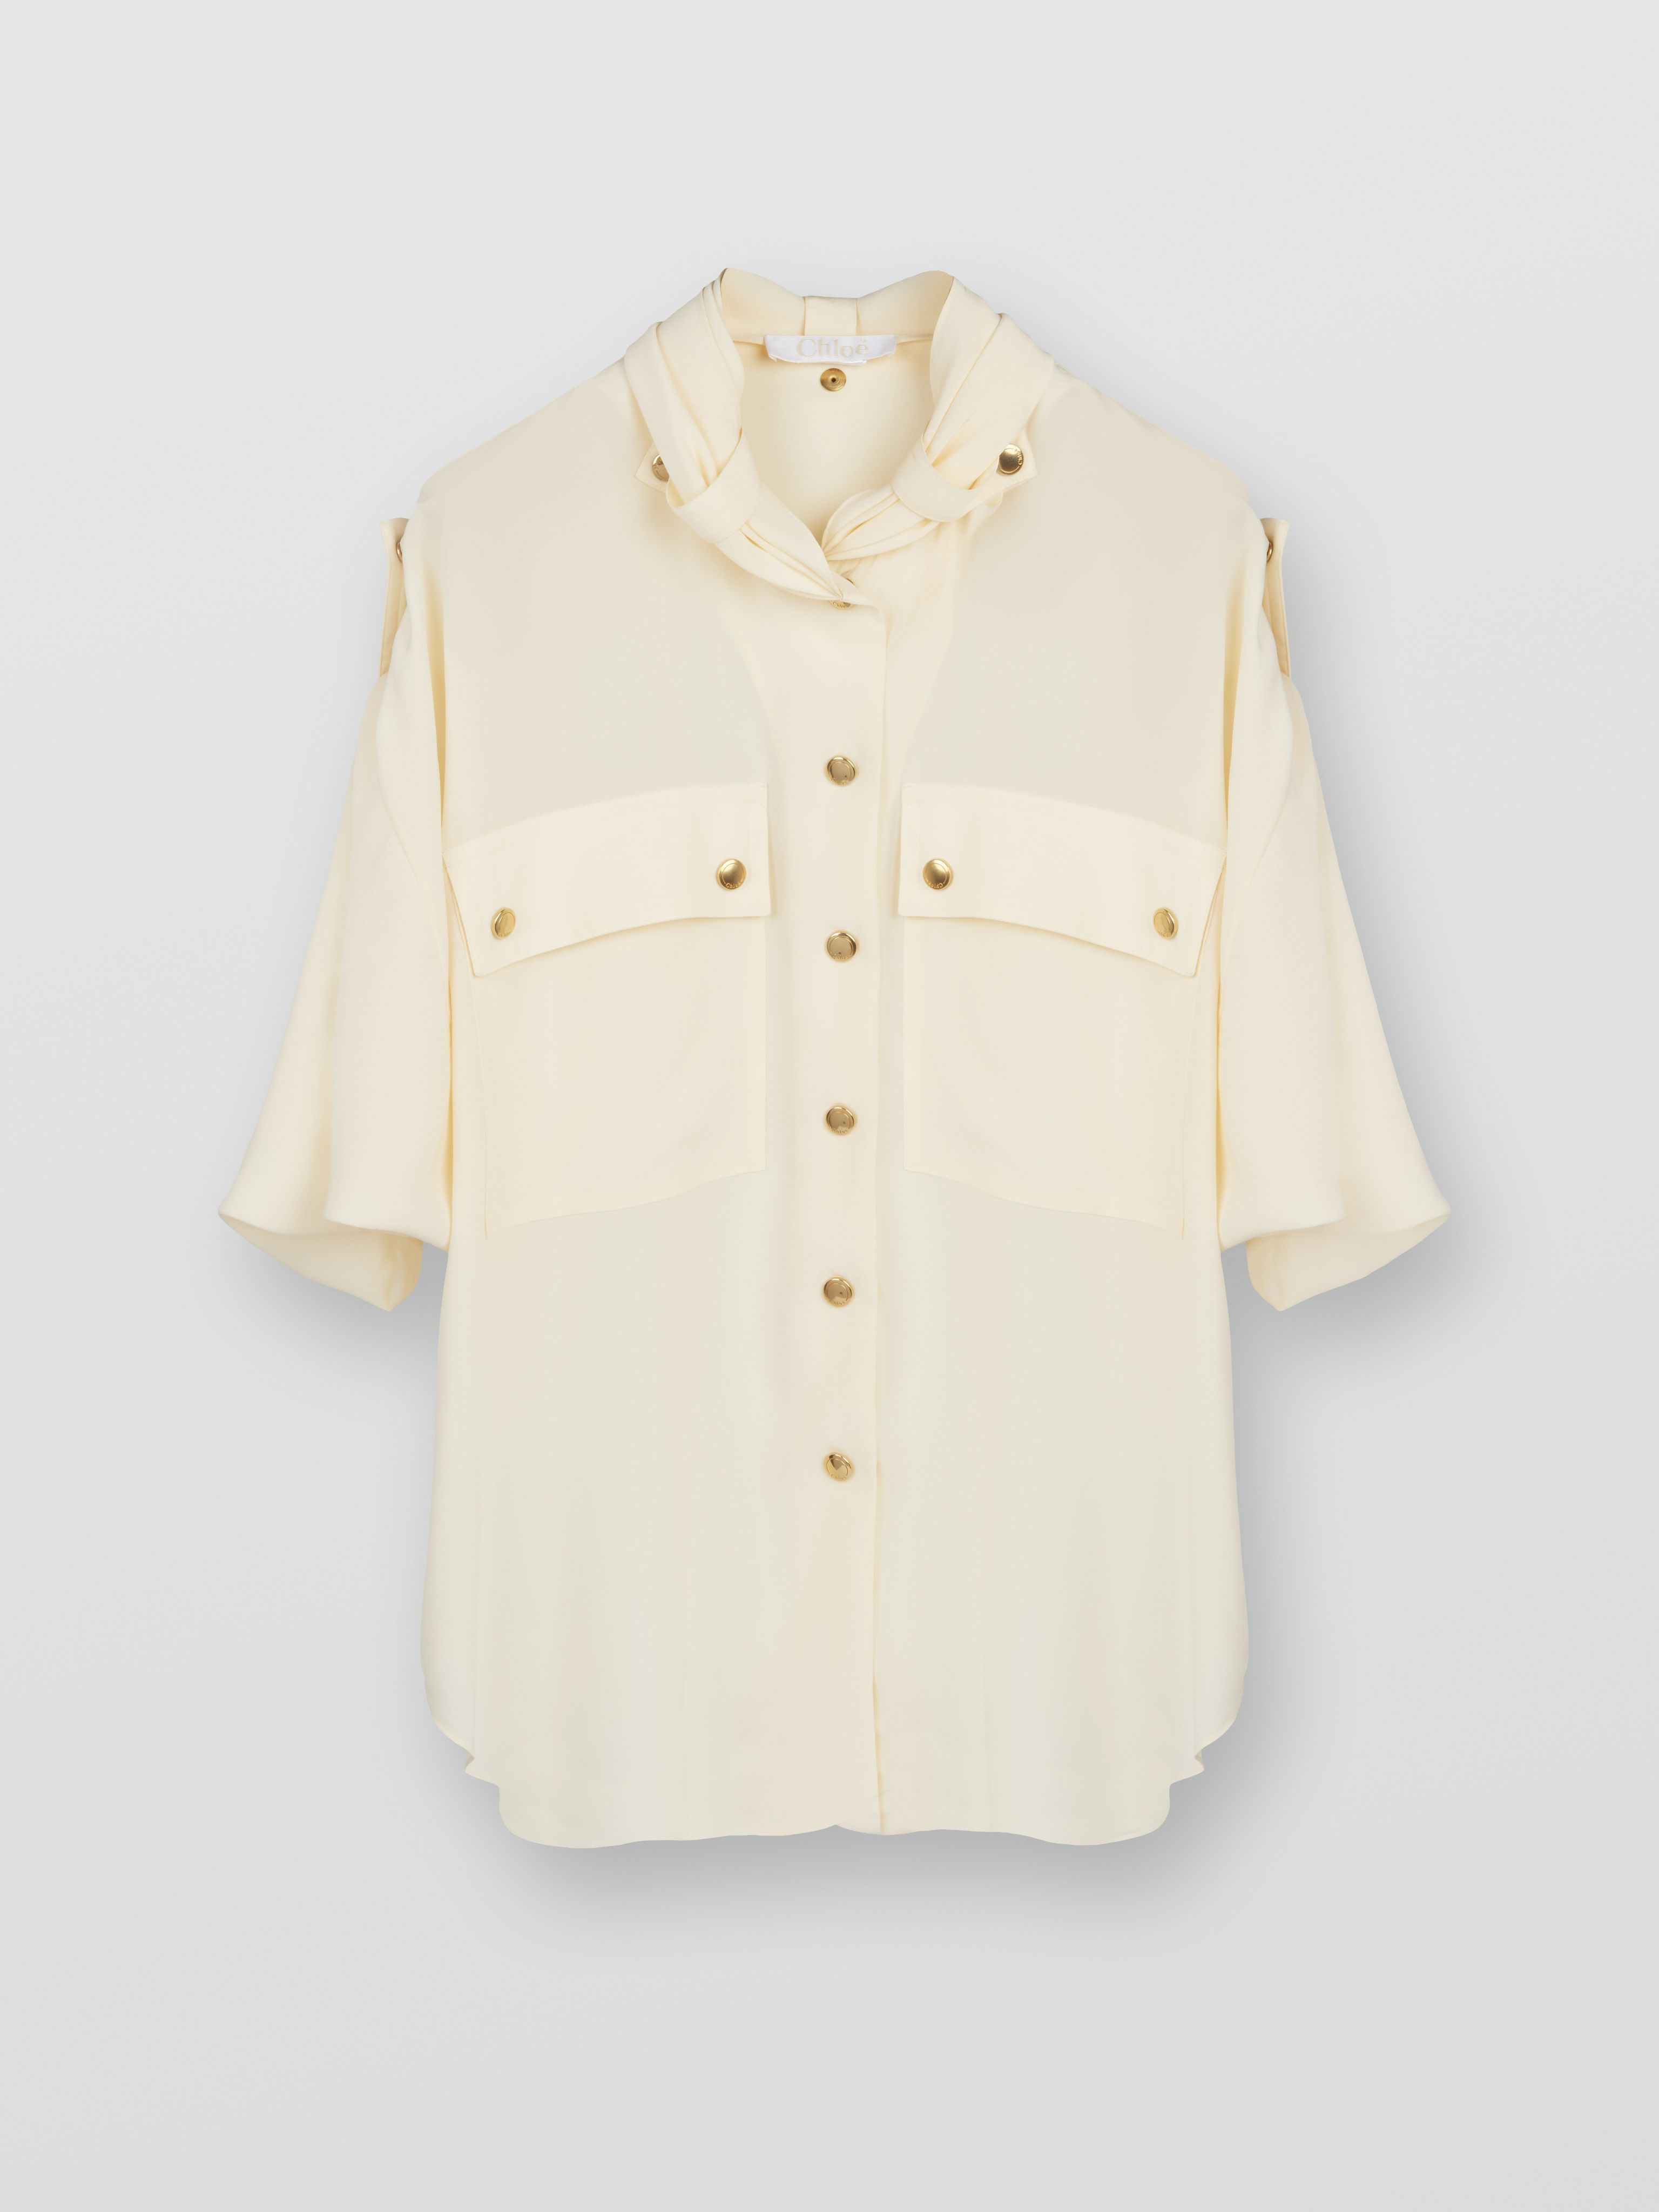 0cfbb230 Chest Pocket Blouse   Ready To Wear   Chloé United States ...